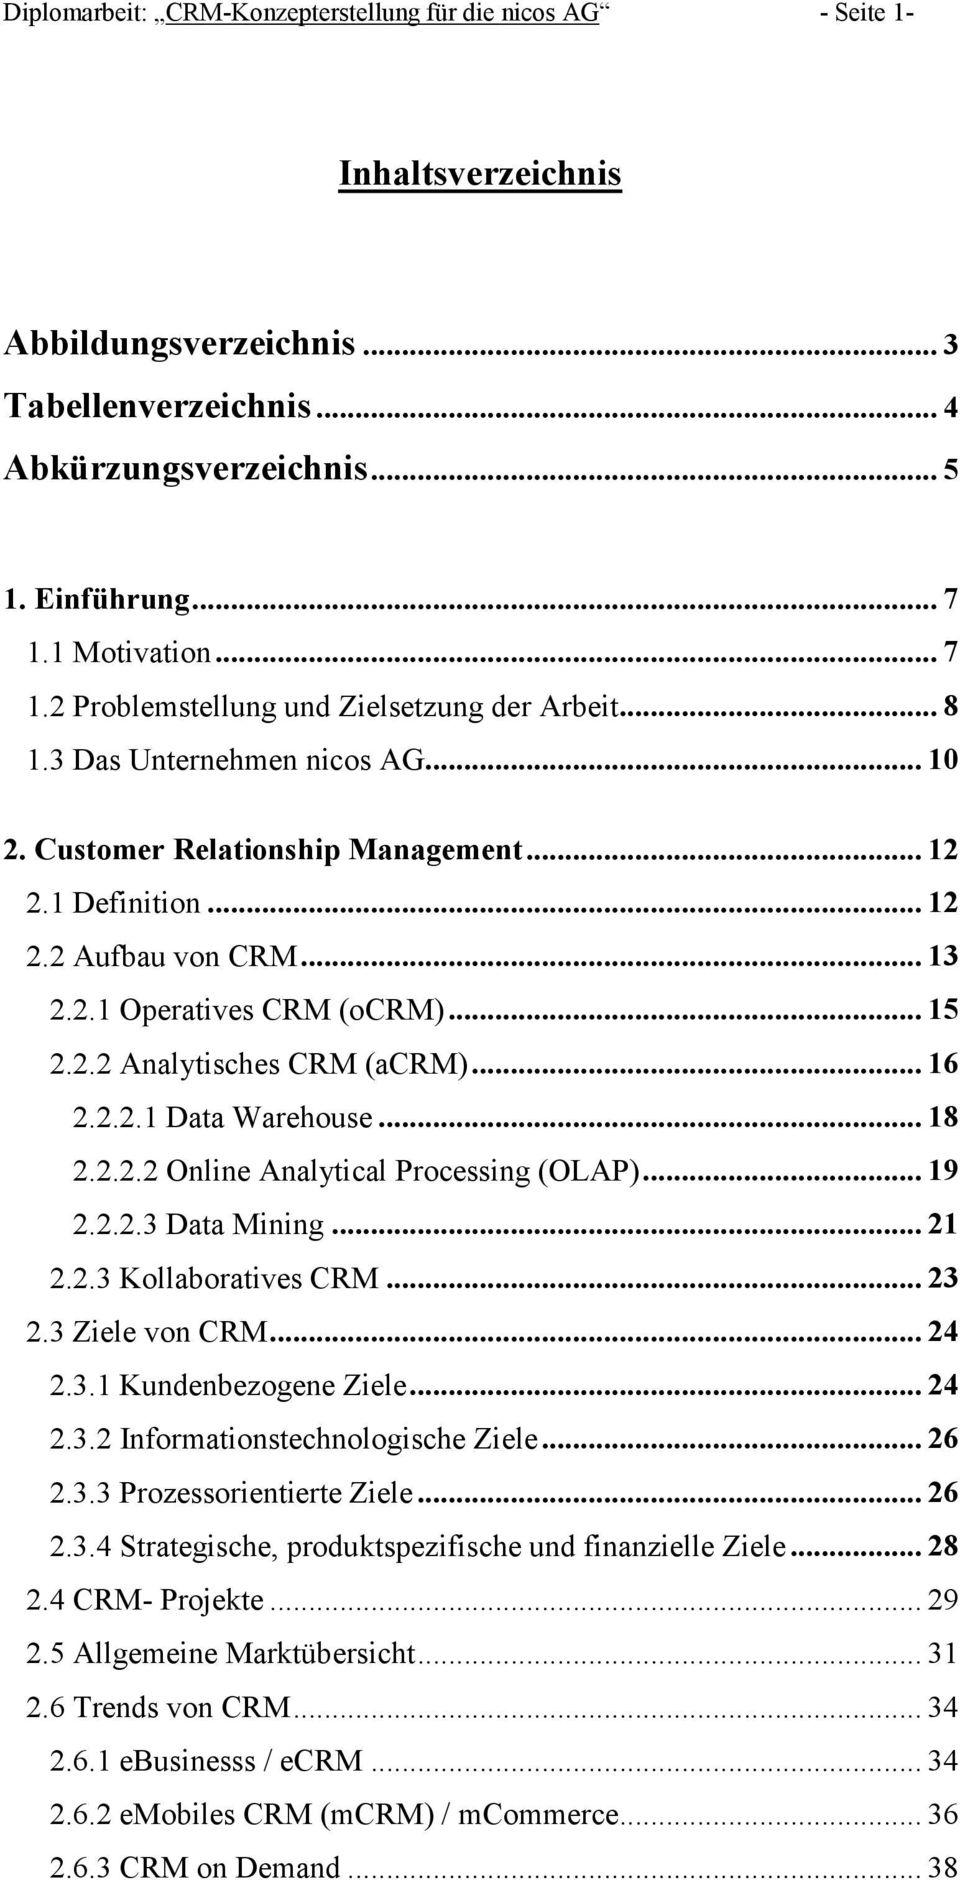 .. 15 2.2.2 Analytisches CRM (acrm)... 16 2.2.2.1 Data Warehouse... 18 2.2.2.2 Online Analytical Processing (OLAP)... 19 2.2.2.3 Data Mining... 21 2.2.3 Kollaboratives CRM... 23 2.3 Ziele von CRM.